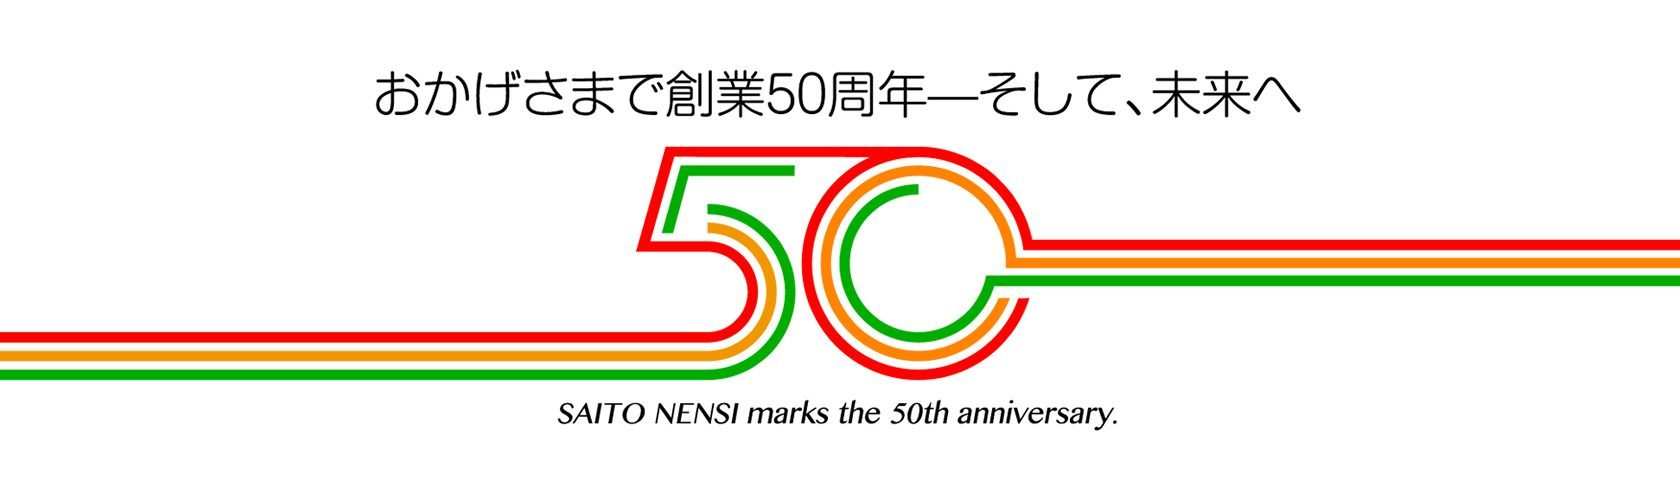 Saito Nenshi co., ltd